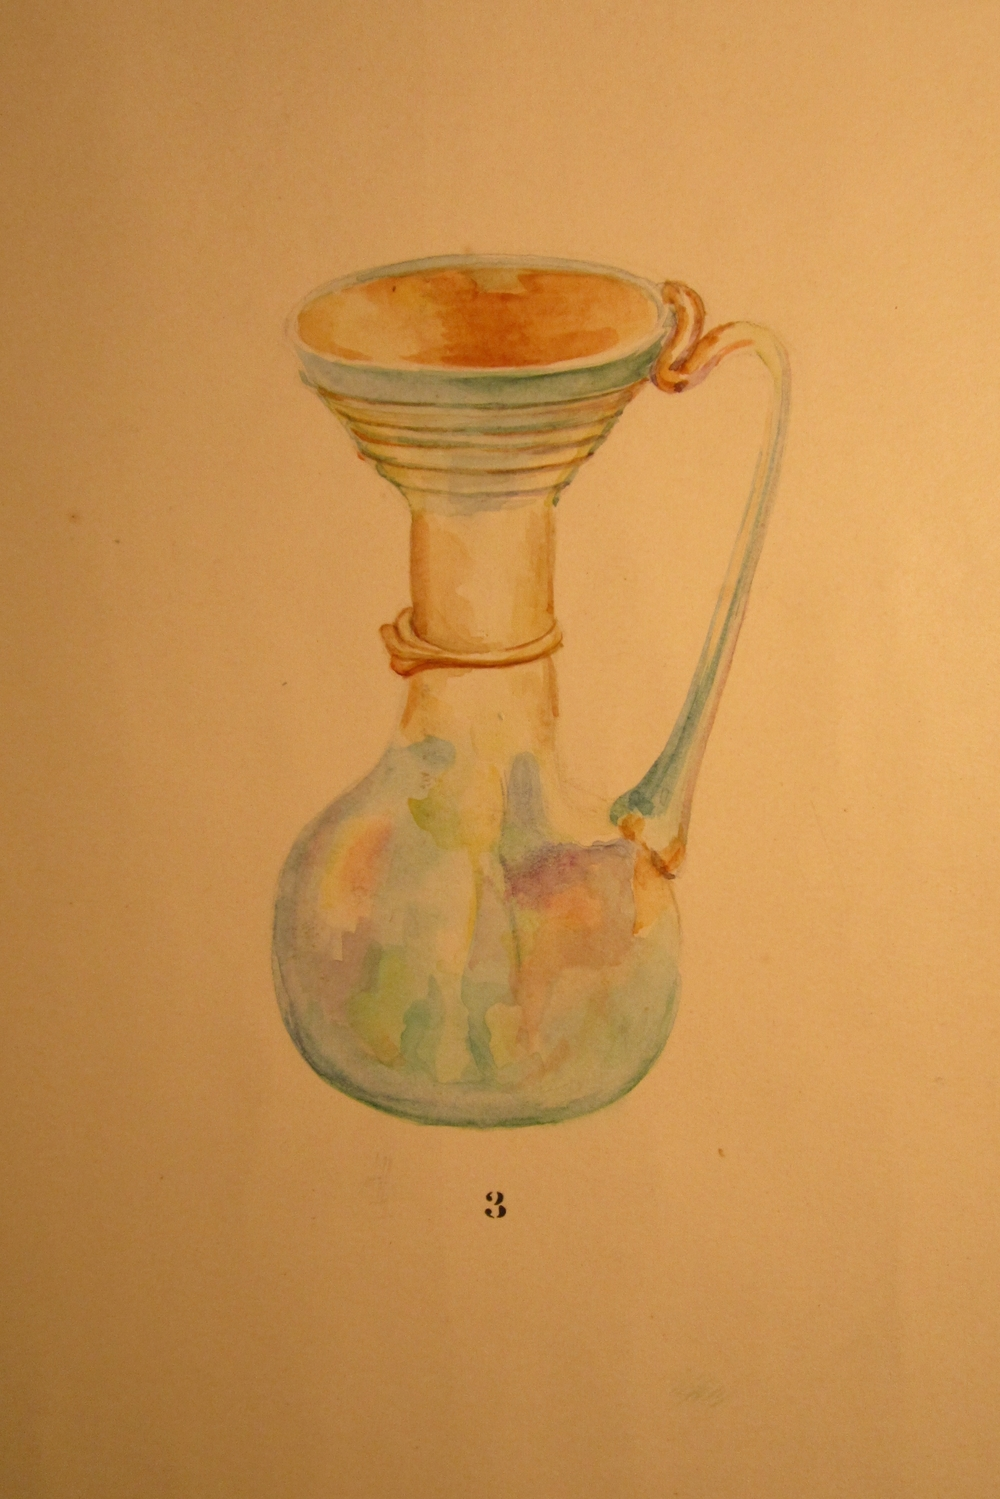 Watercolor of this jug, from the Rowe excavation watercolors.